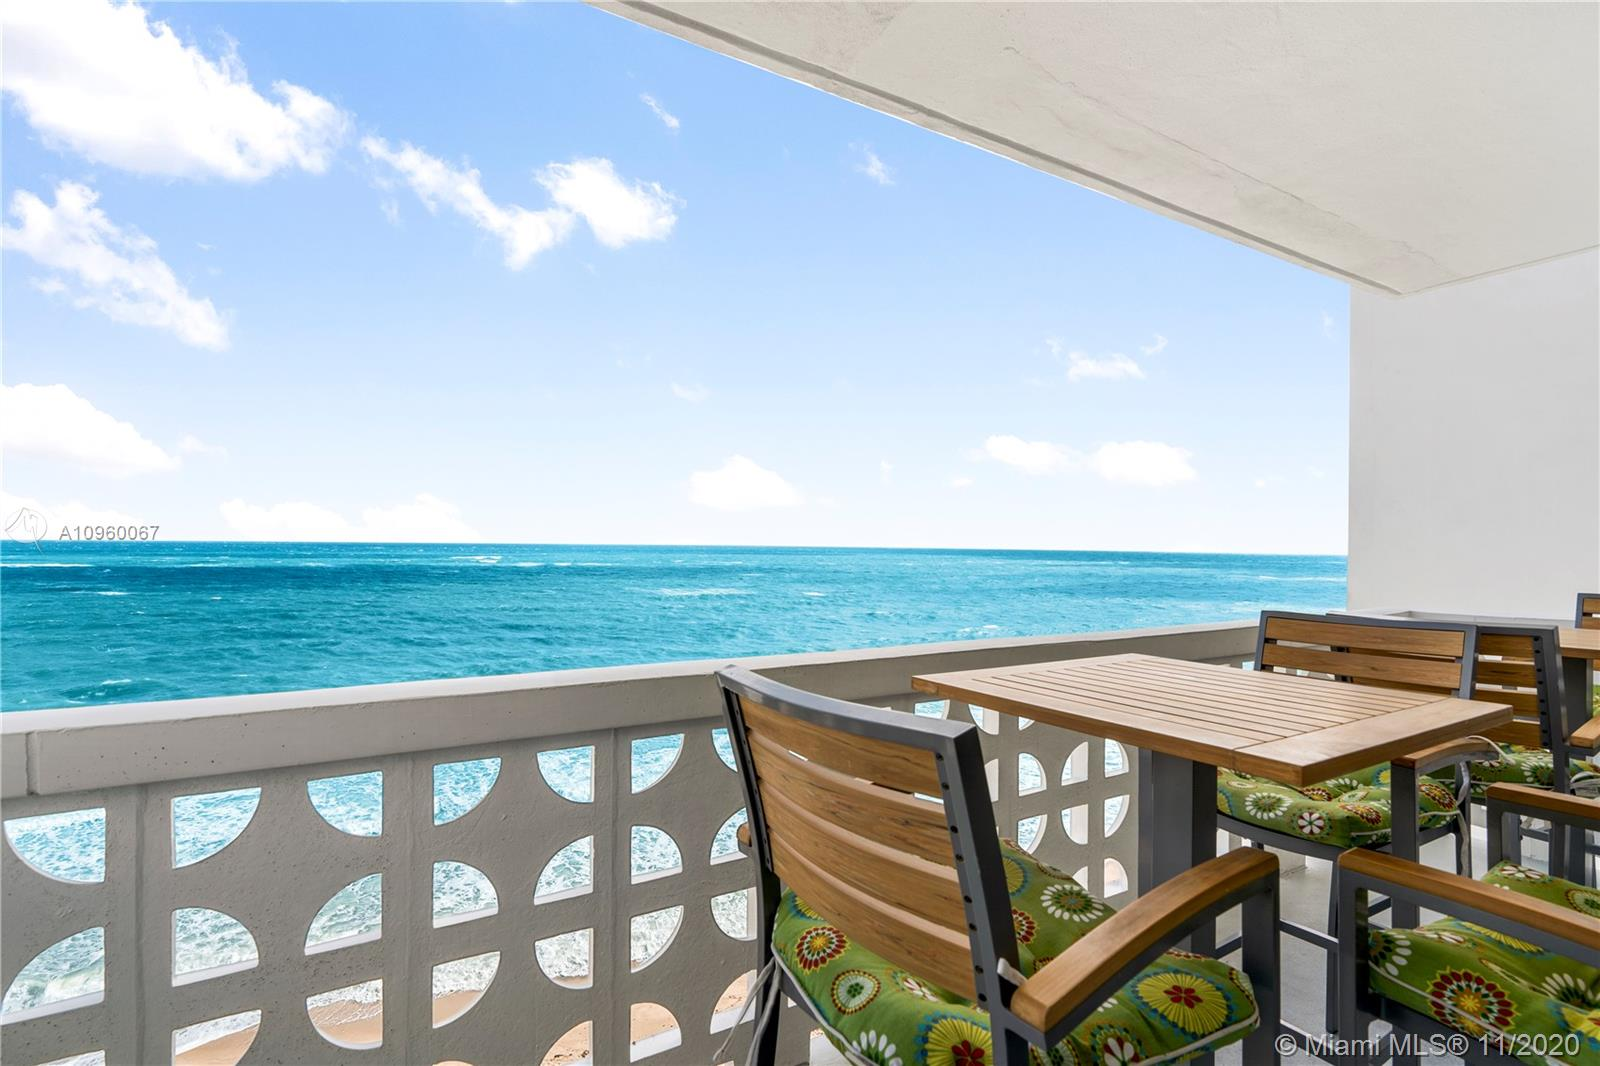 Welcome to this direct oceanfront corner unit located in Ocean Summit on Fort Lauderdale's Galt Mile. This residence captures the essence of beachfront living. The floor height is just perfect, welcoming you to enjoy the ocean breeze and sounds of crashing waves, while still allowing you to enjoy the endless views of the Atlantic Ocean seemingly at your feet. The residence has been fully remodeled and features impact windows, in unit washer & dryer and fully updated bathrooms. The kitchen boasts granite countertops and stainless steel appliances. The building has 24 hr security, fitness center, heated pool and plenty parking spaces for guests. Ocean Summit is located walking distance to restaurants, shops, grocery store and much more!